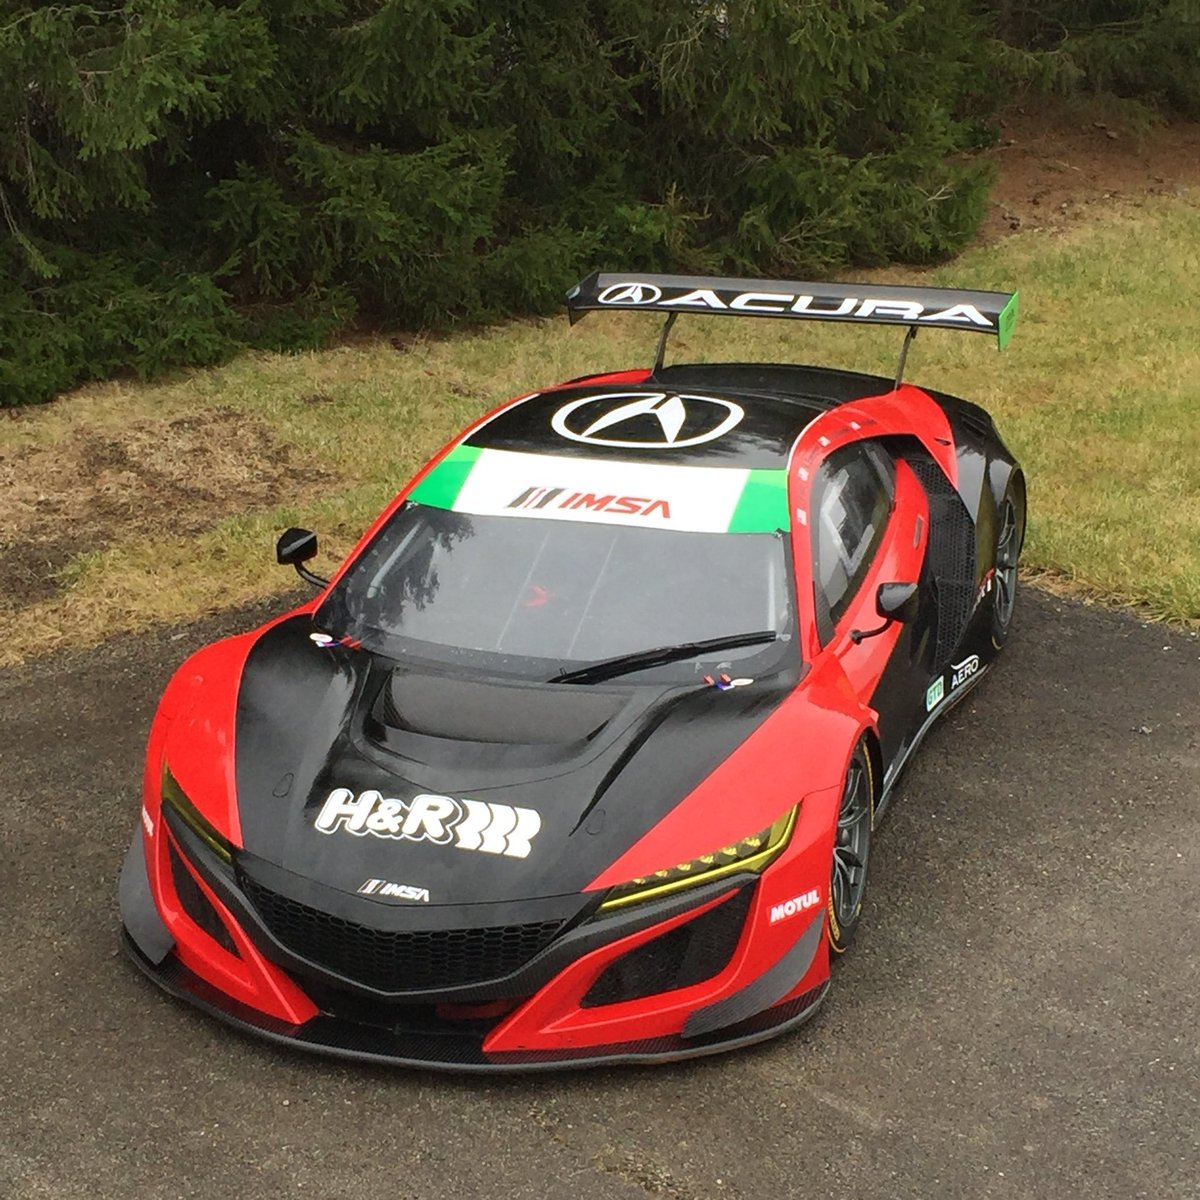 """Lyle Pearson Acura On Twitter: """"The Brand New #Acura #NSX"""